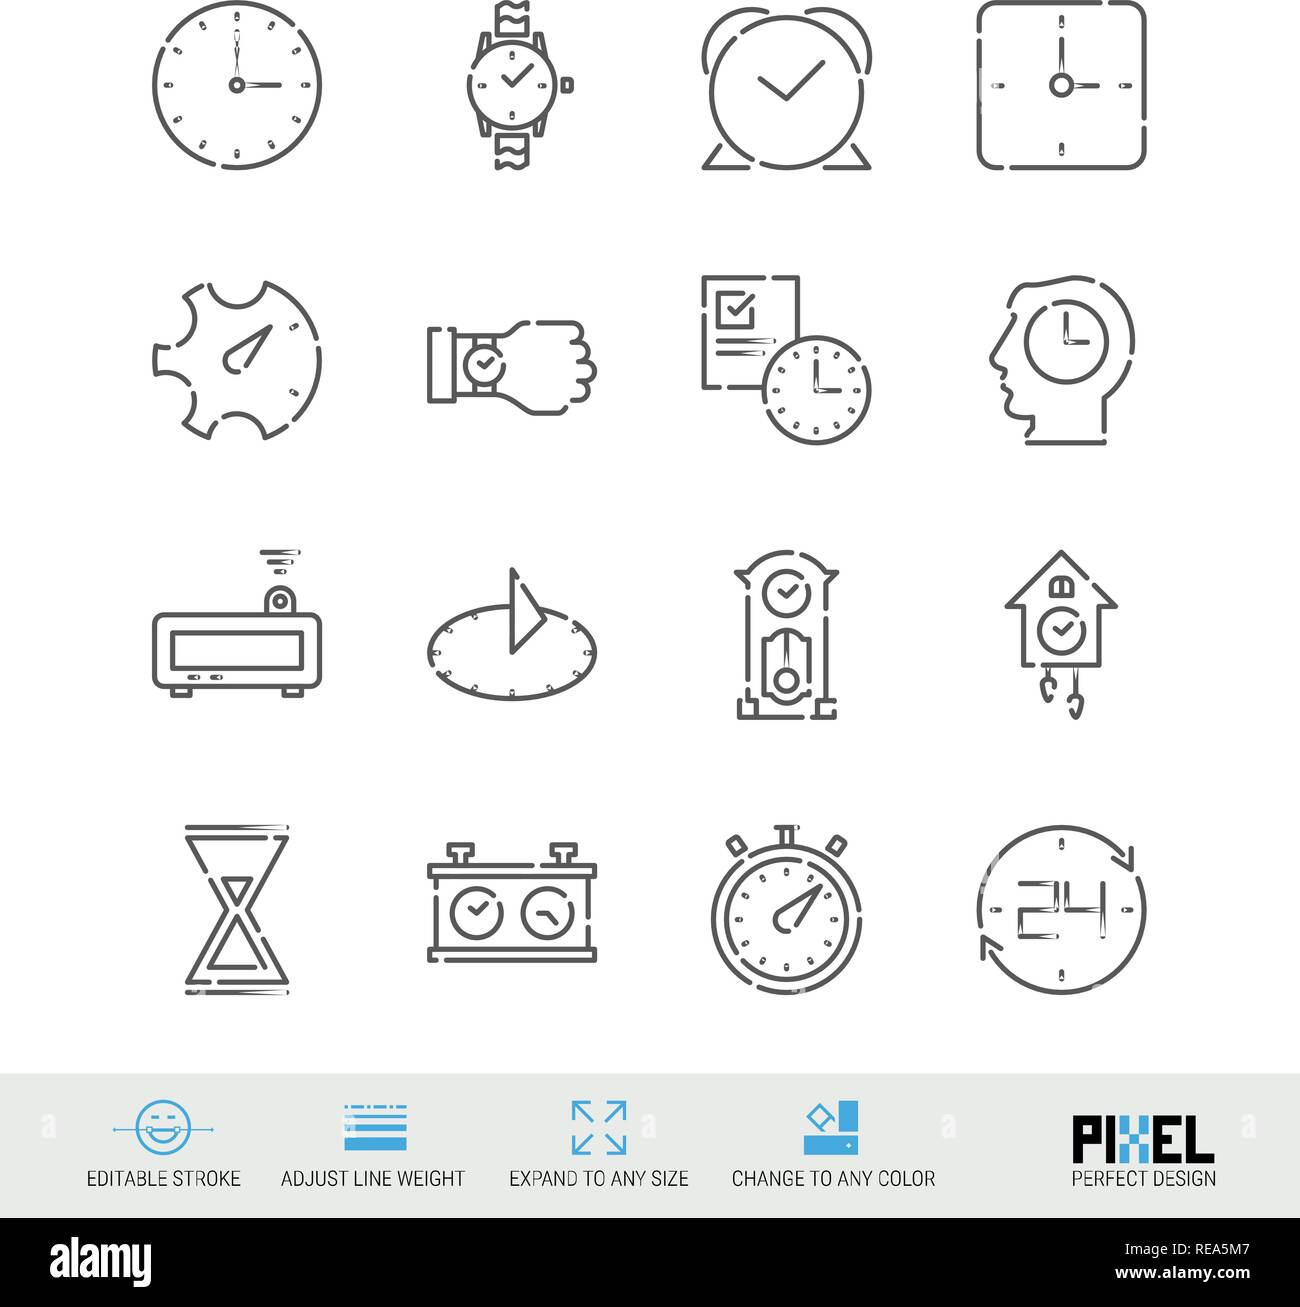 Vector Line Icon Set. Time Related Linear Icons. Clock Symbols, Pictograms, Signs - Stock Image